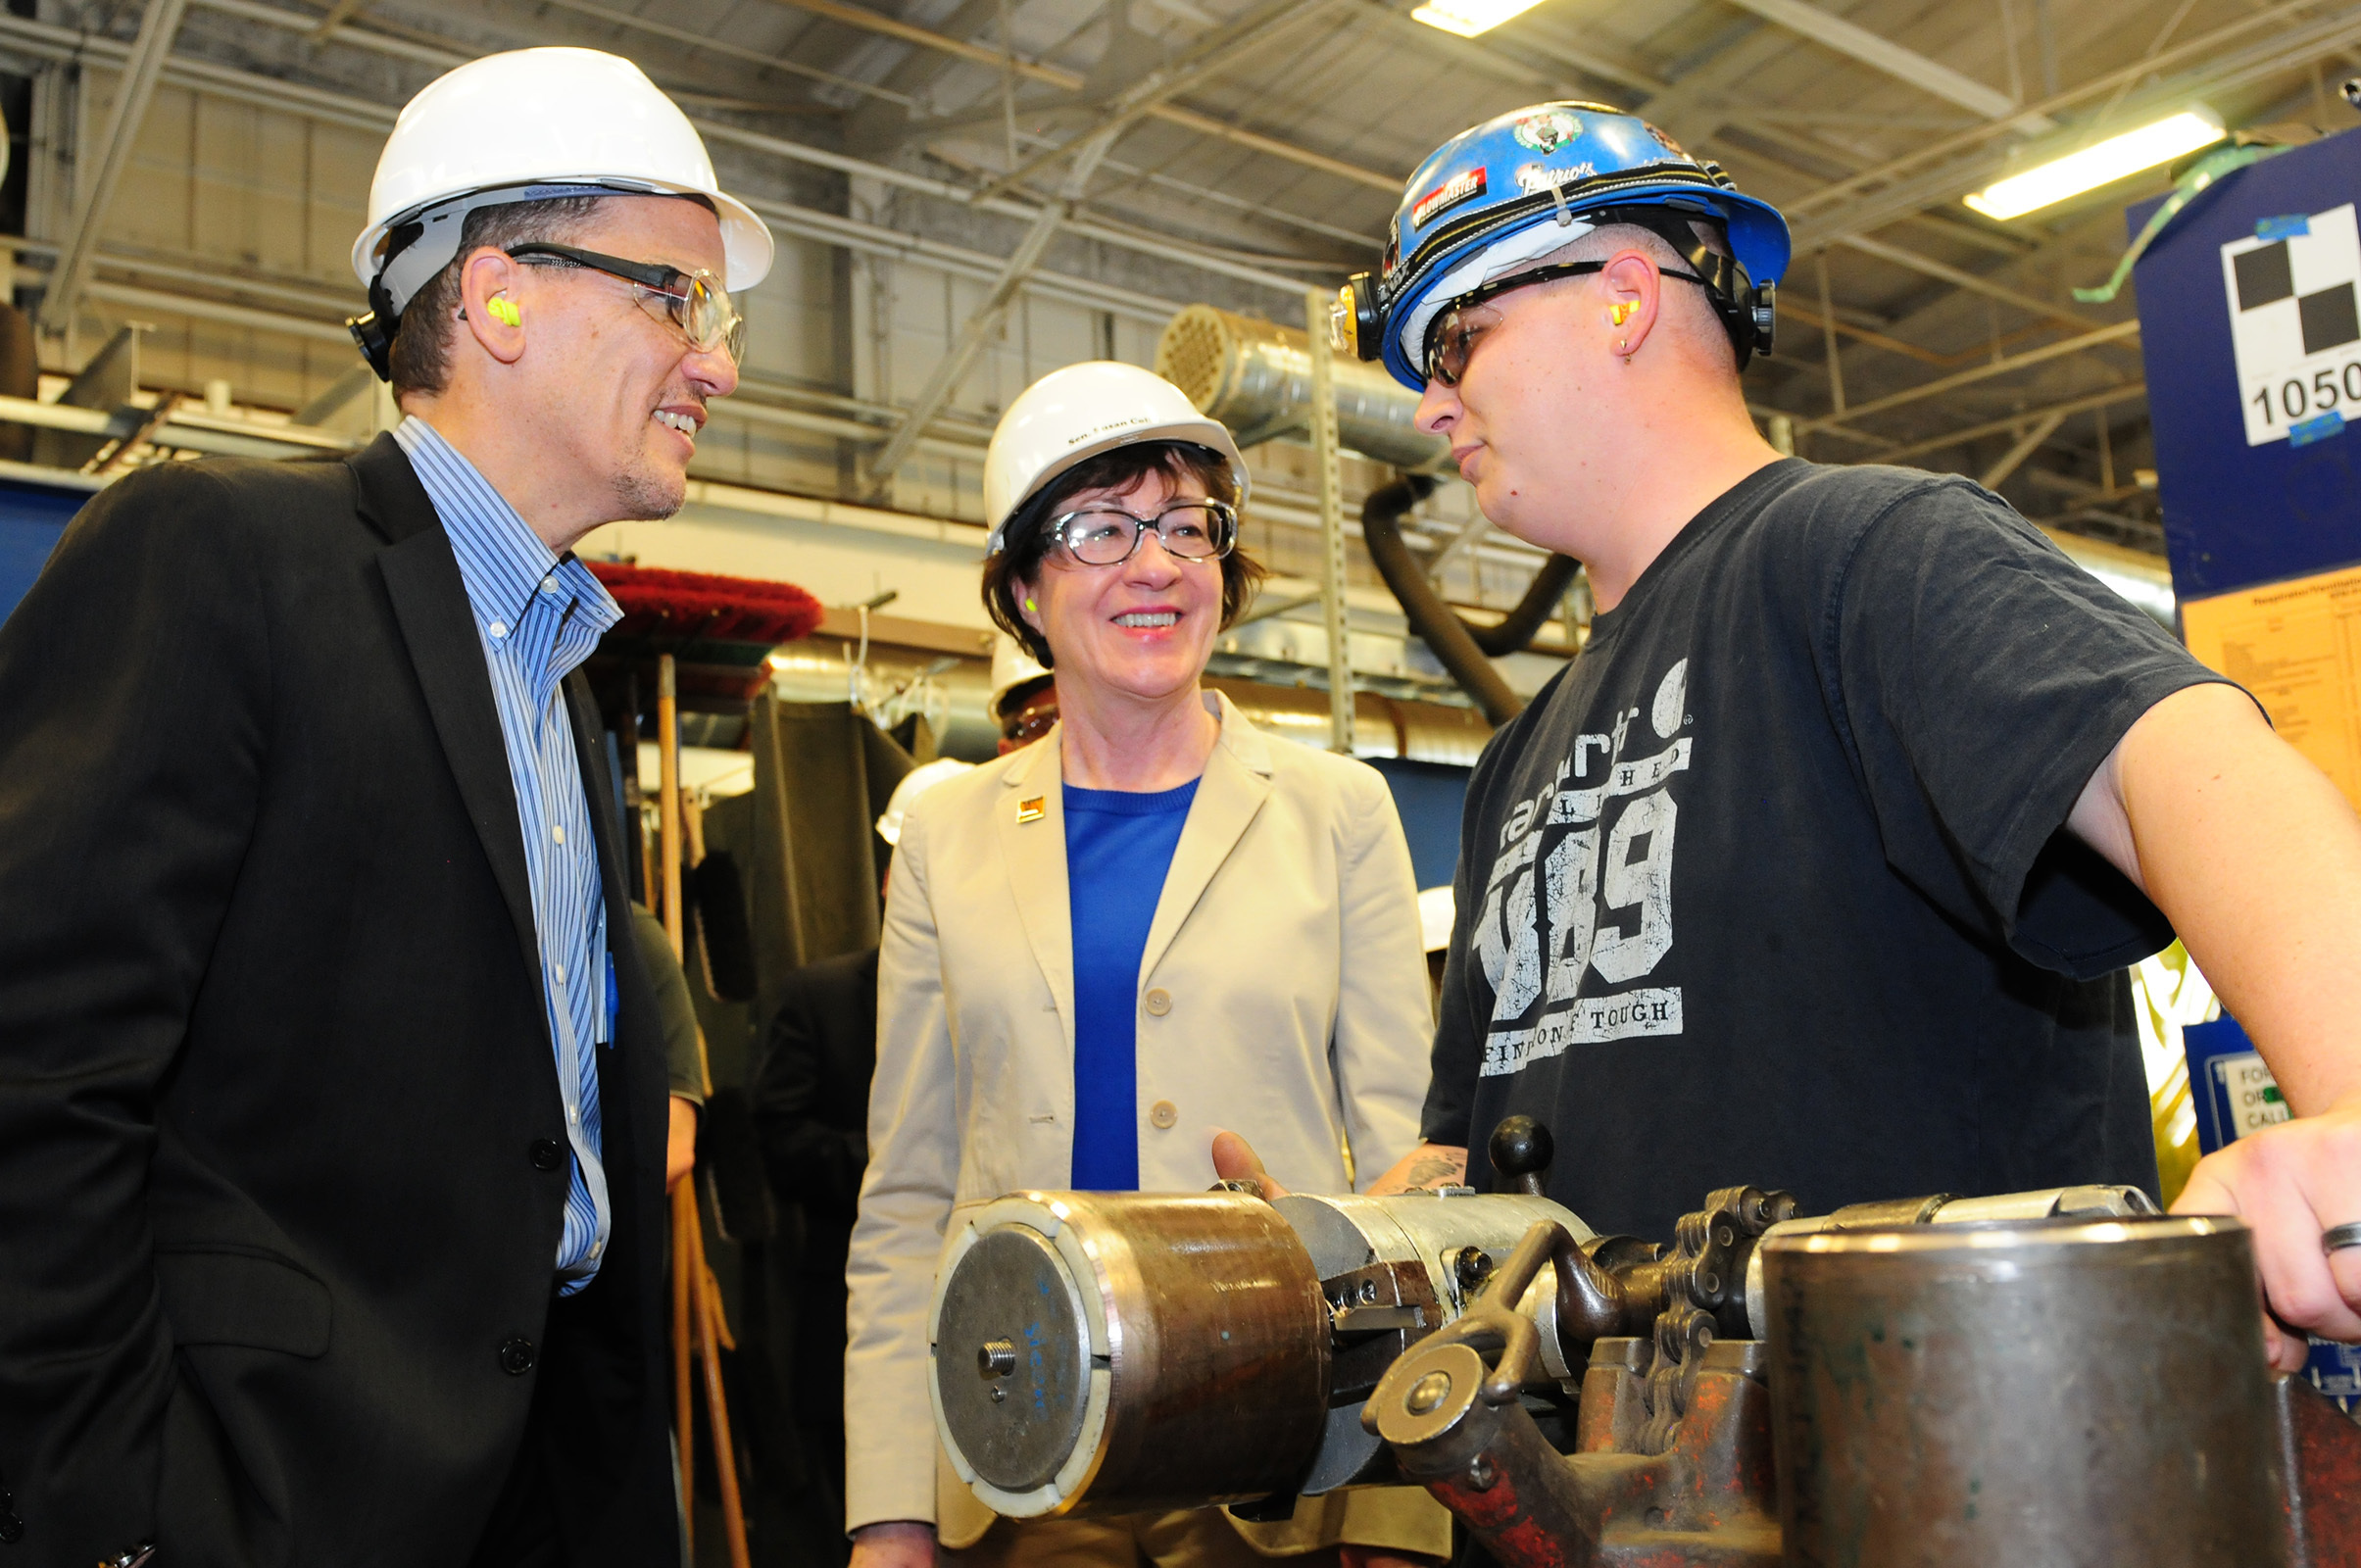 The U.S. Secretary of Labor, Thomas Perez and U.S. Senator Susan Collins (R-Maine) talk with Derek Farrington of Brunswick, Maine, an apprentice at the Trades Learning Center at Bath Iron Works.